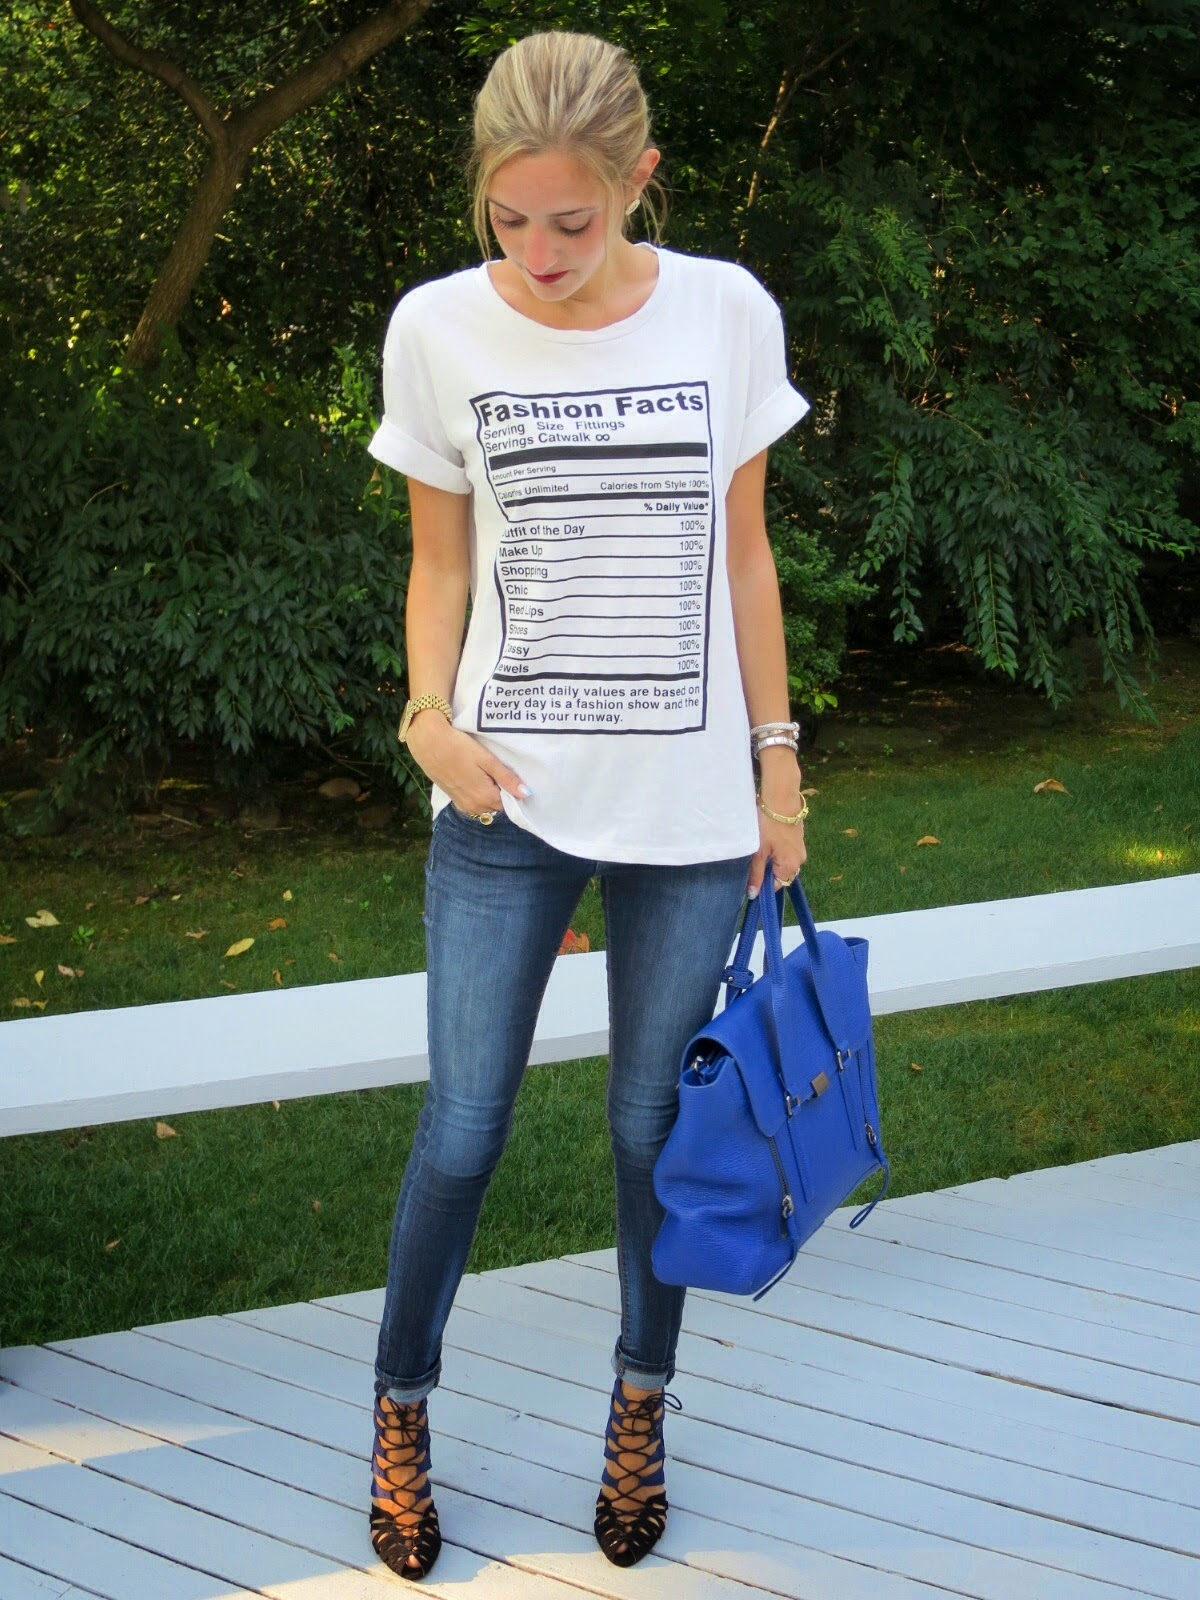 zara fashion facts t shirt